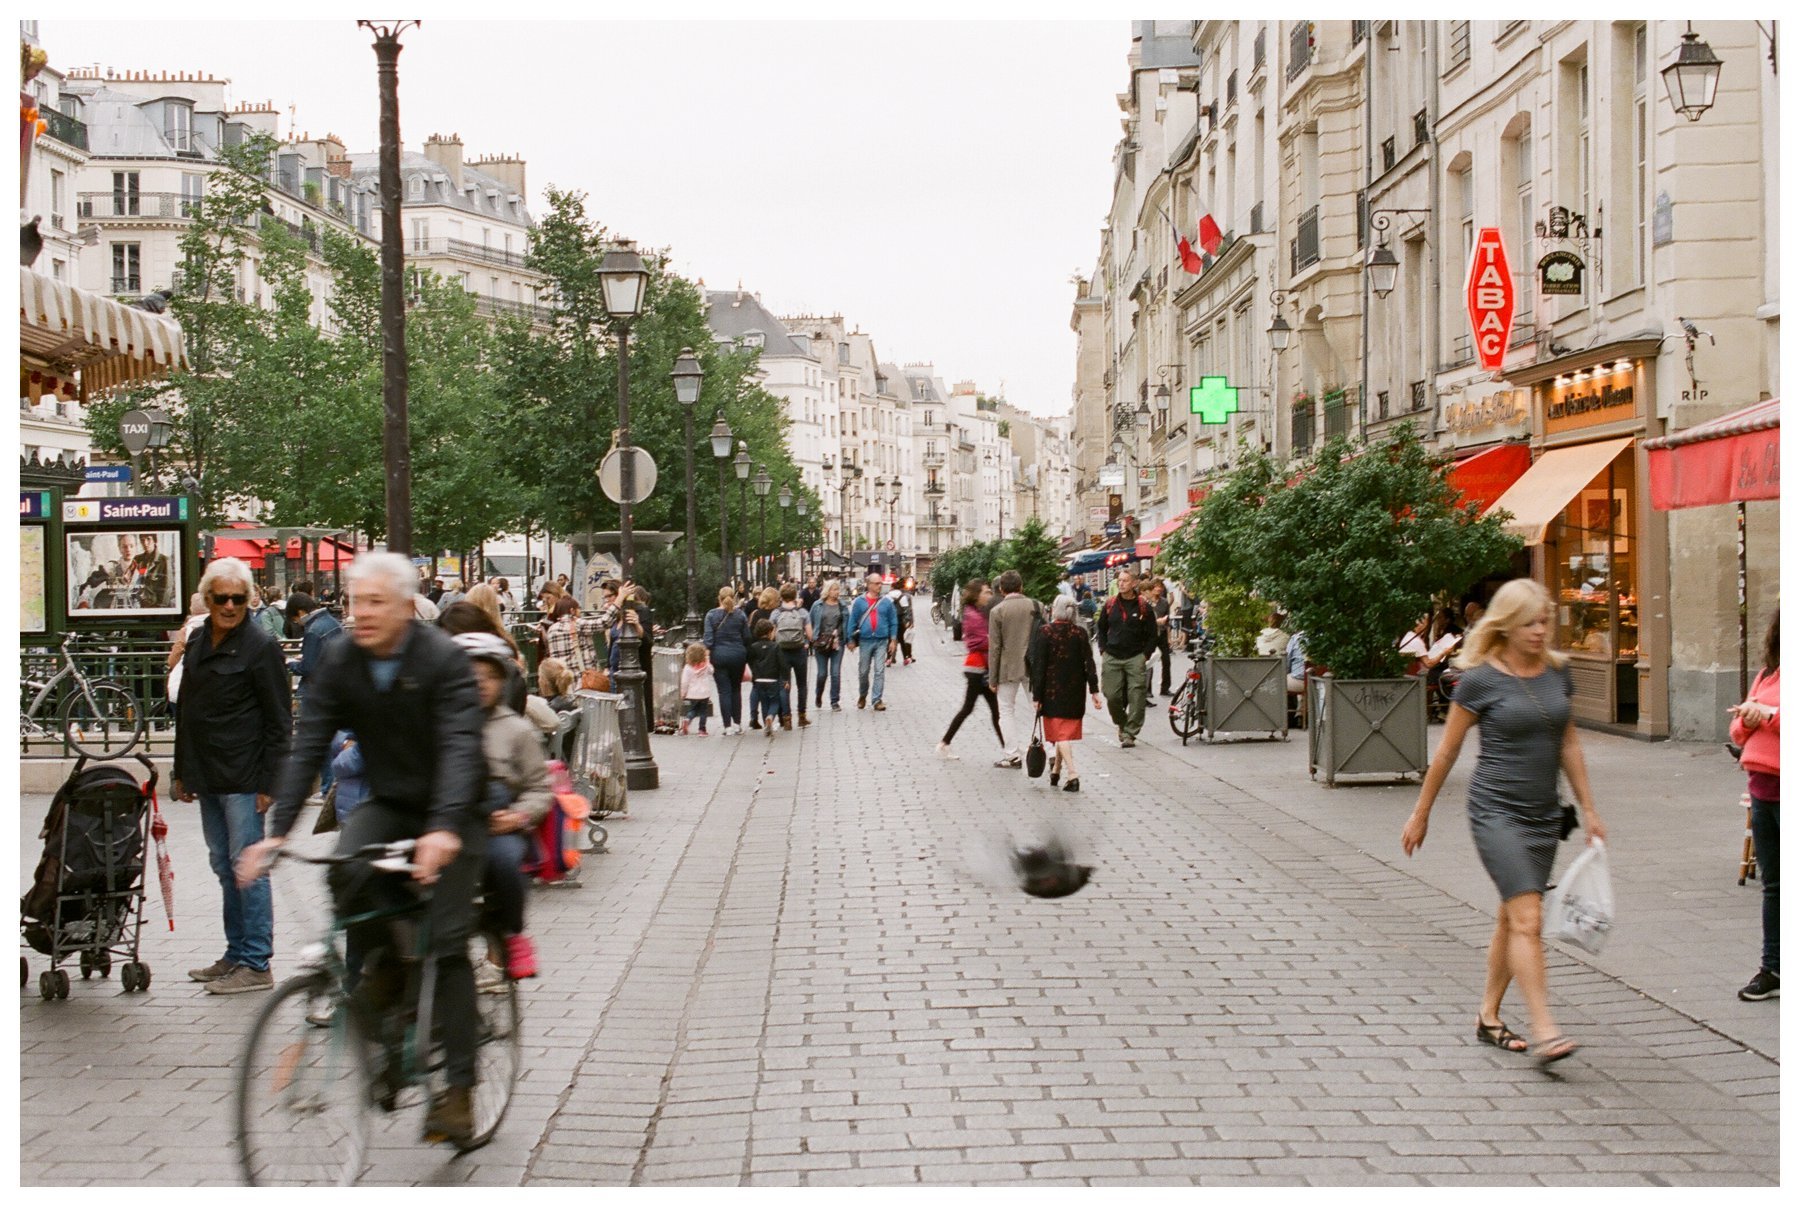 fine art travel photography by Booth Photographics in the Le Marais district of Paris, France